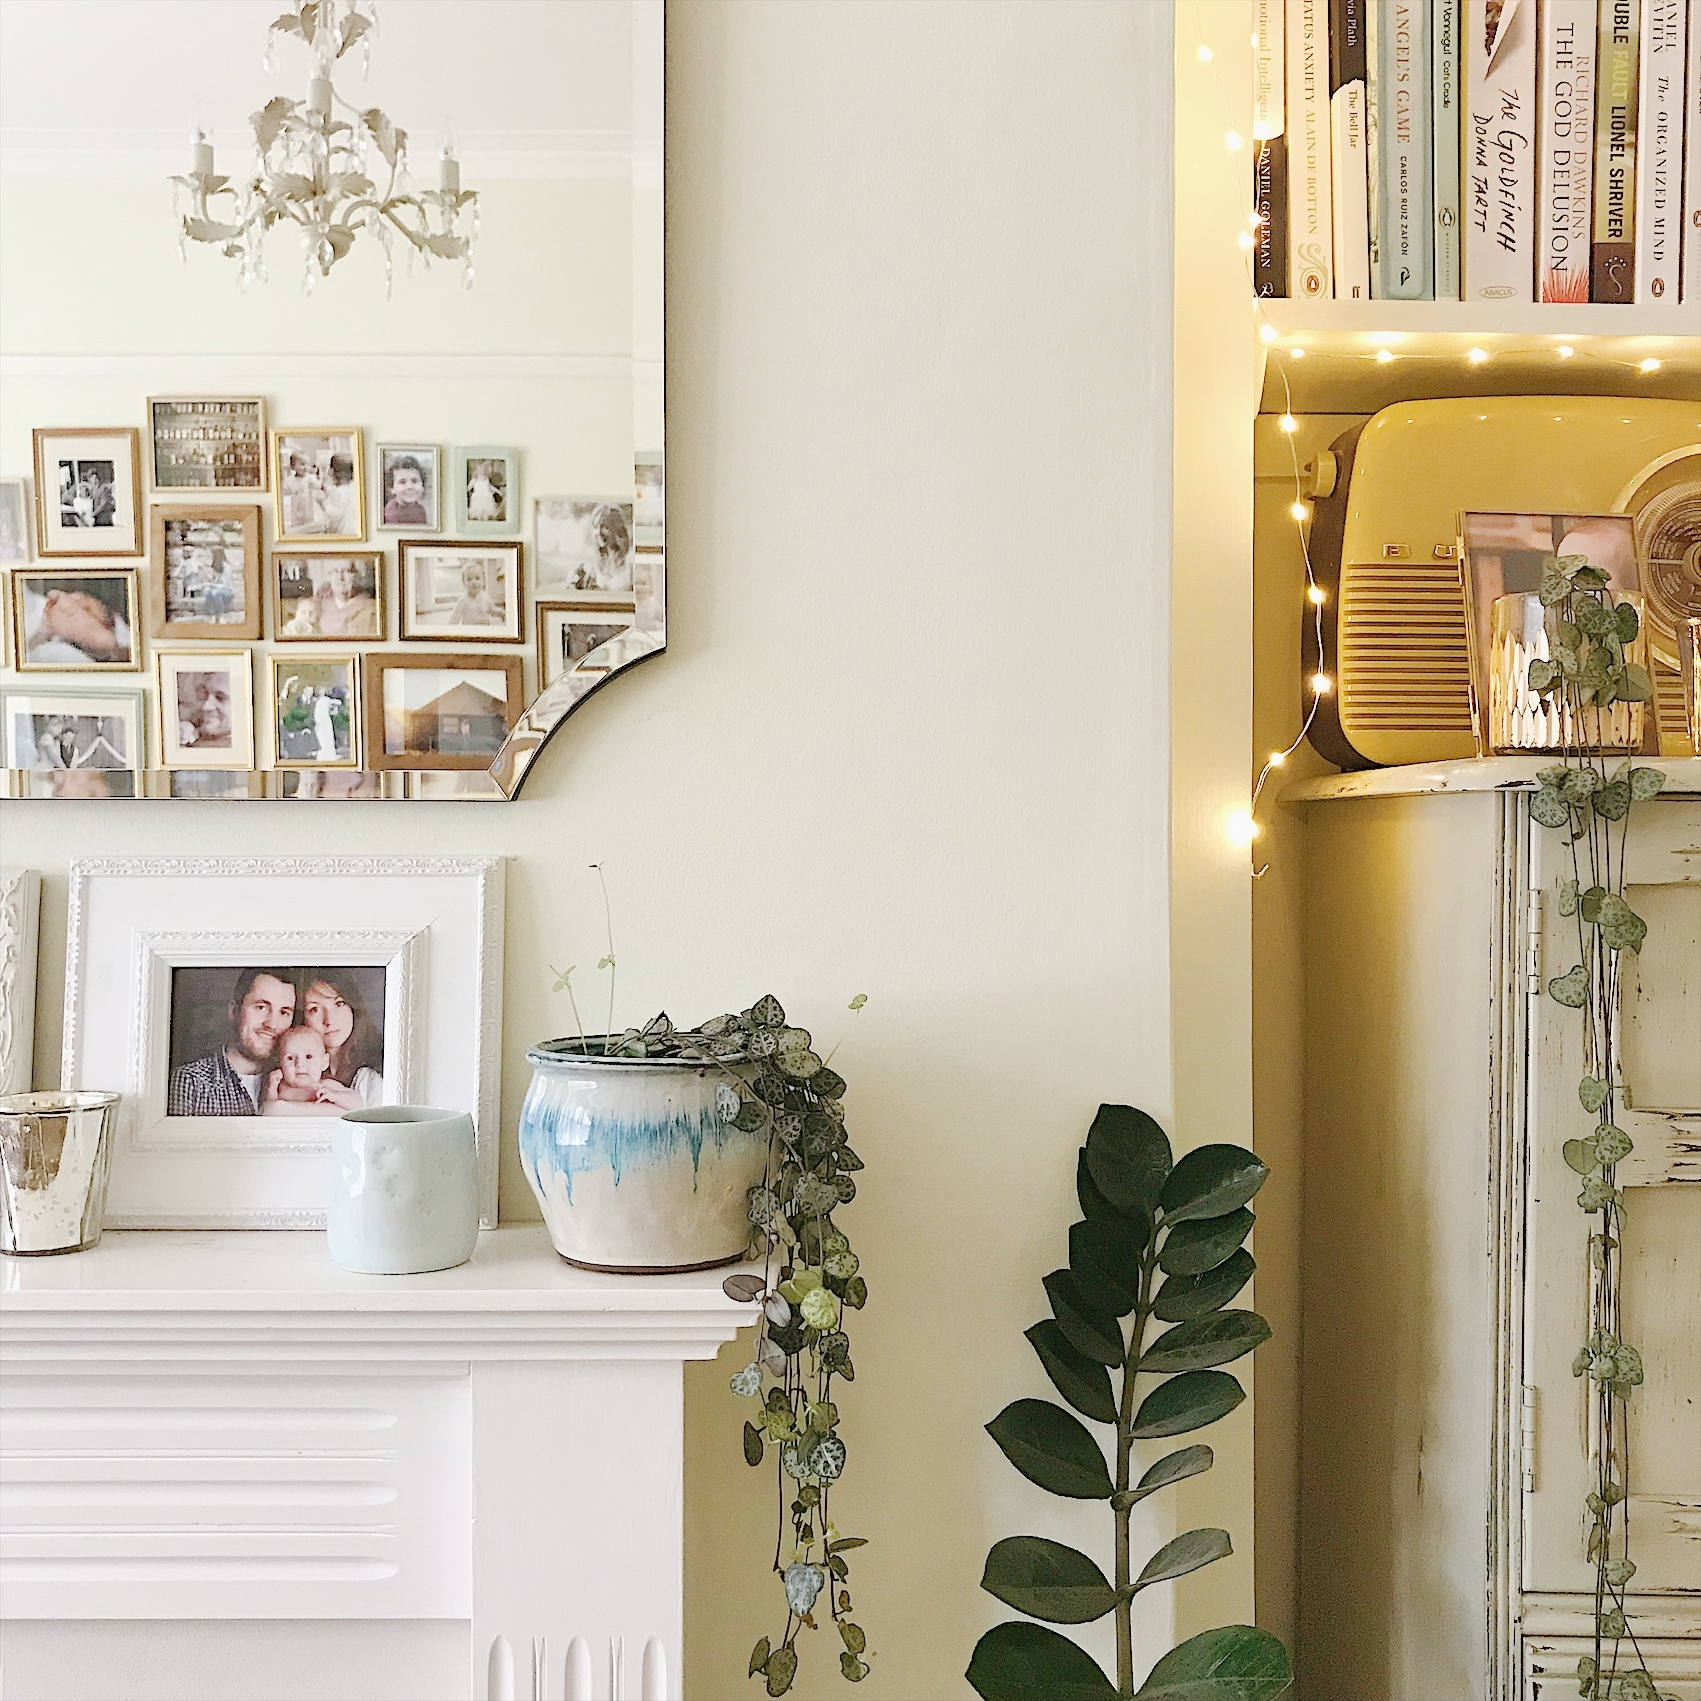 Photos propped against a wall look inviting and allow space for styling in front, and that gallery wall again in the mirror